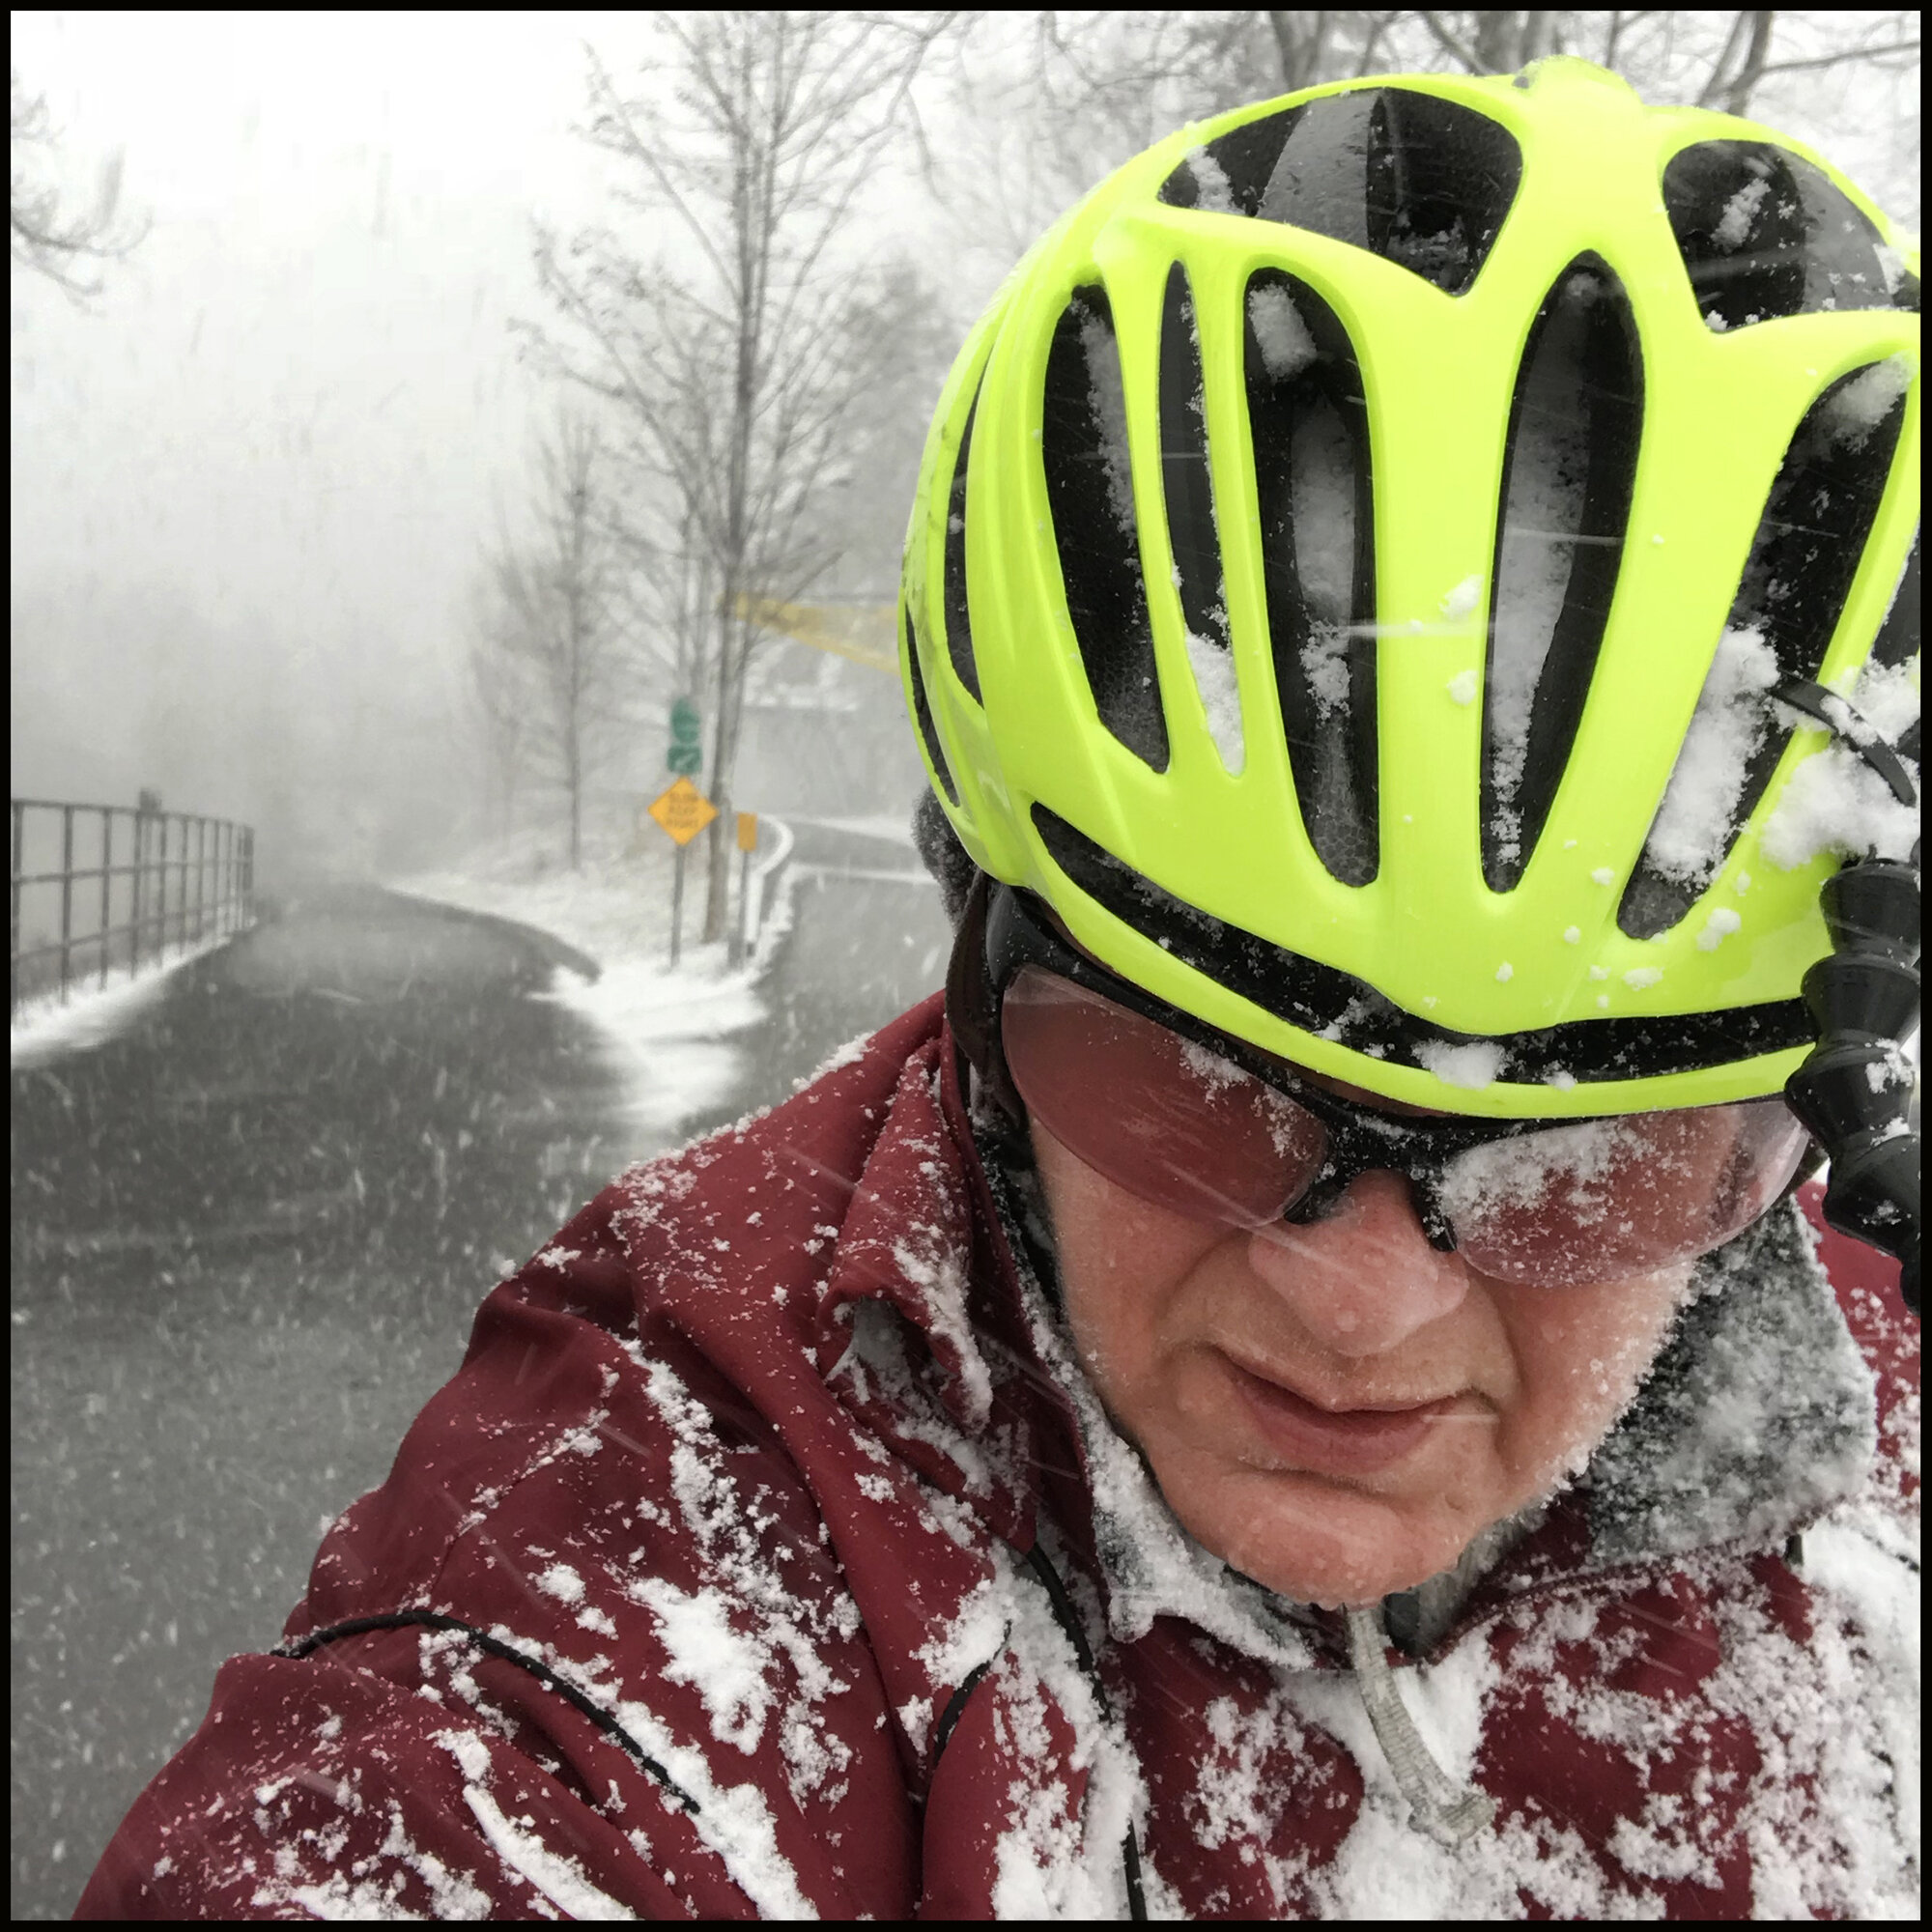 Selfie of Annette cycling in the snow.